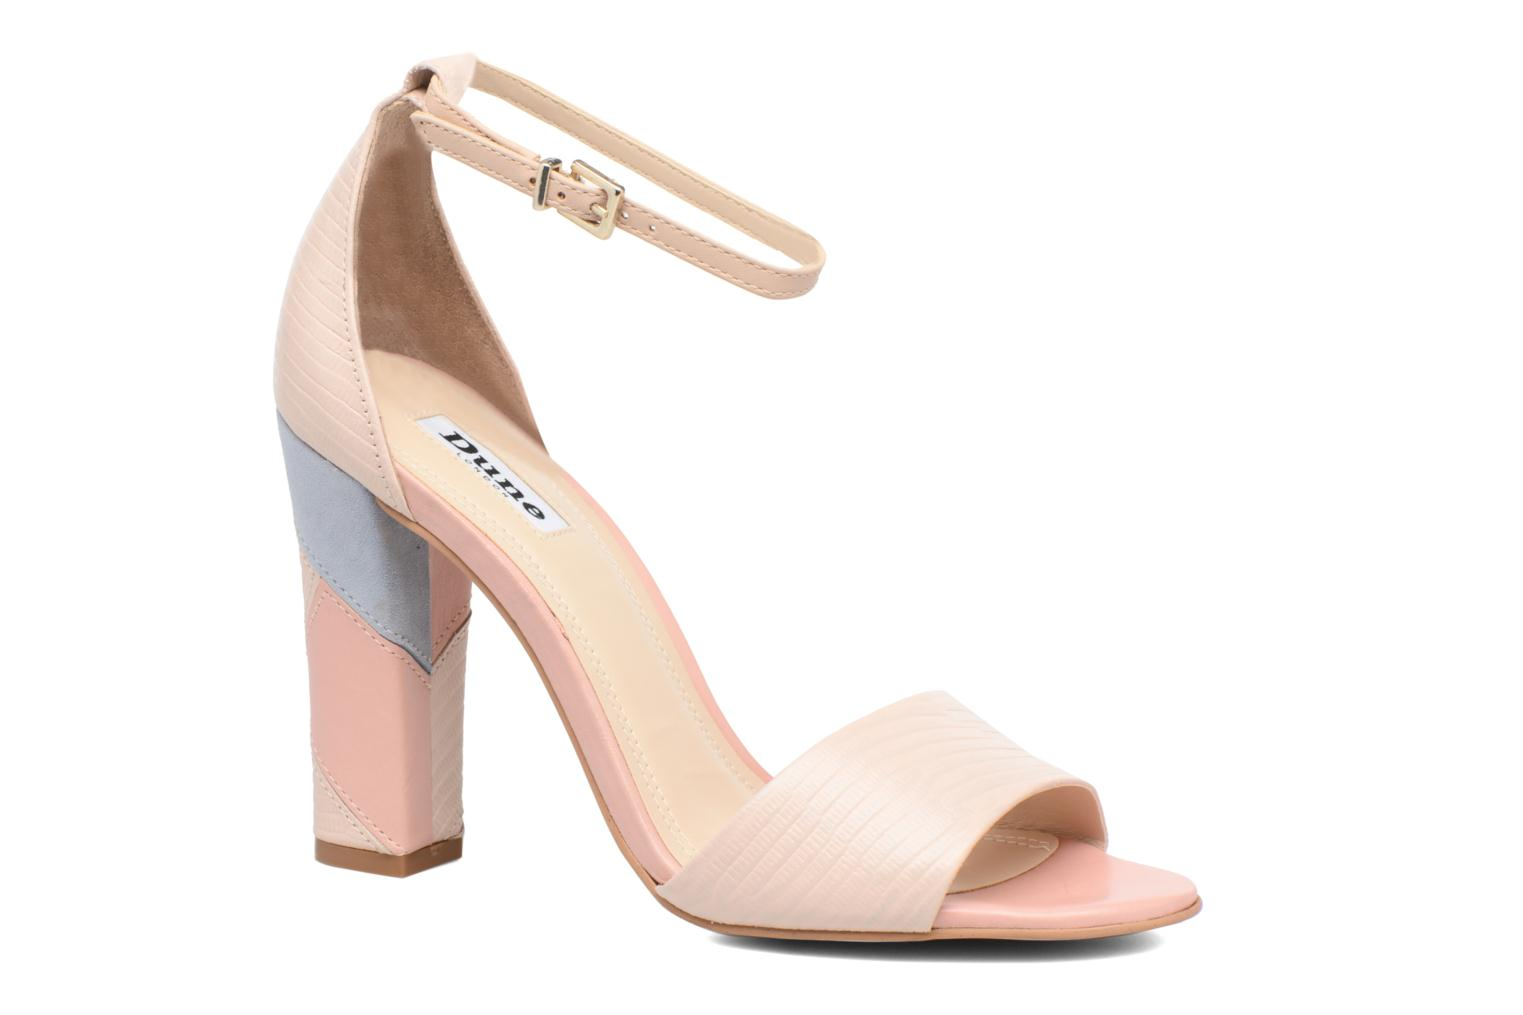 Marques Chaussure femme Dune London femme Harpest NUDE SUEDE